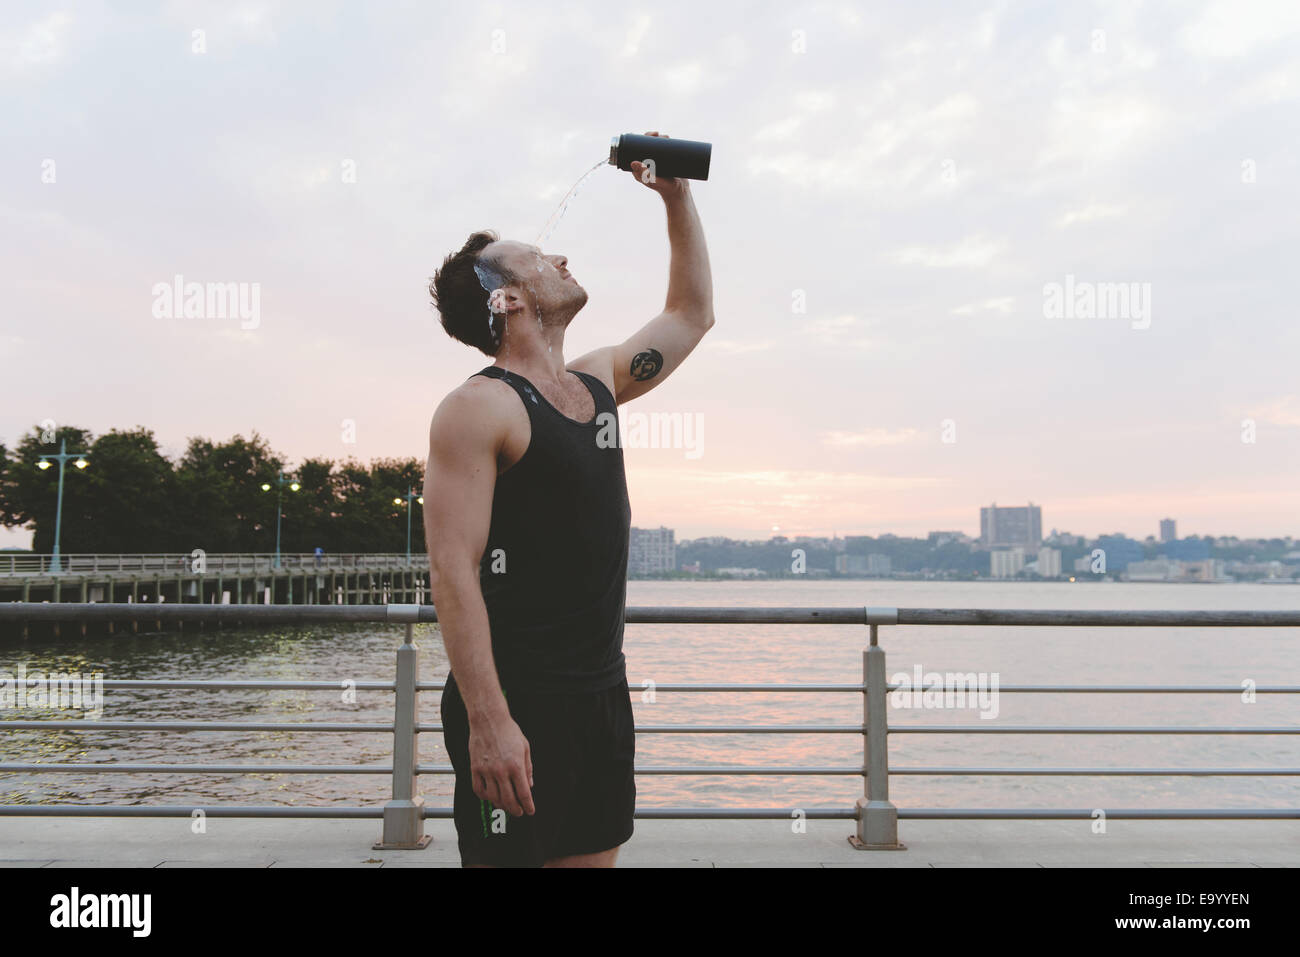 Young male runner verser de l'eau sur son visage sur Riverside au lever du soleil Photo Stock